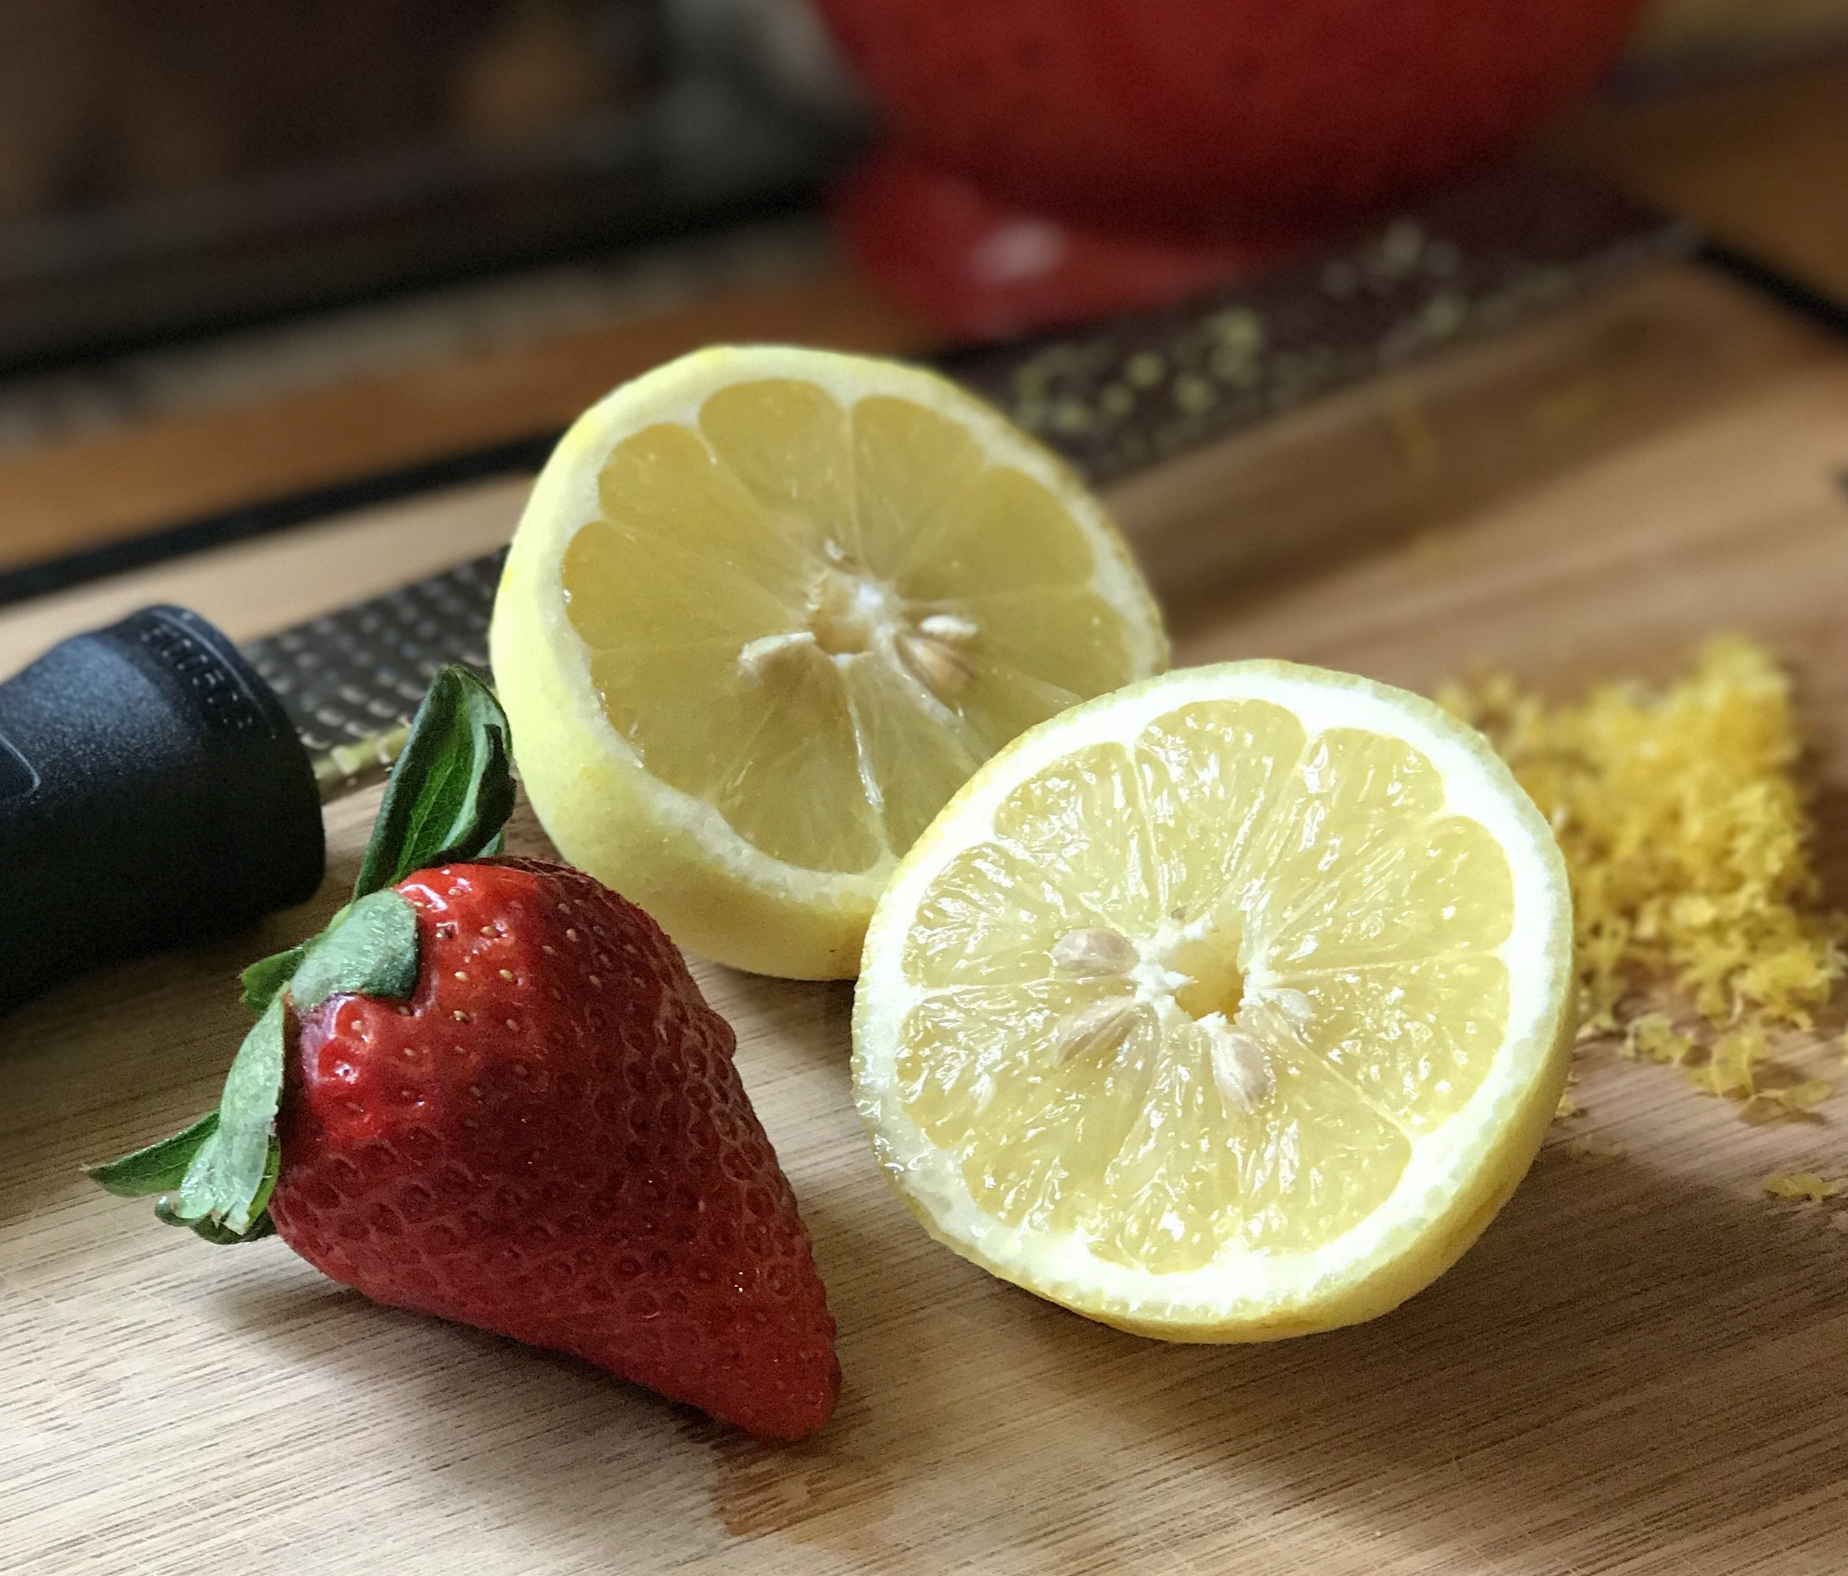 Fresh Lemon zest and strawberries